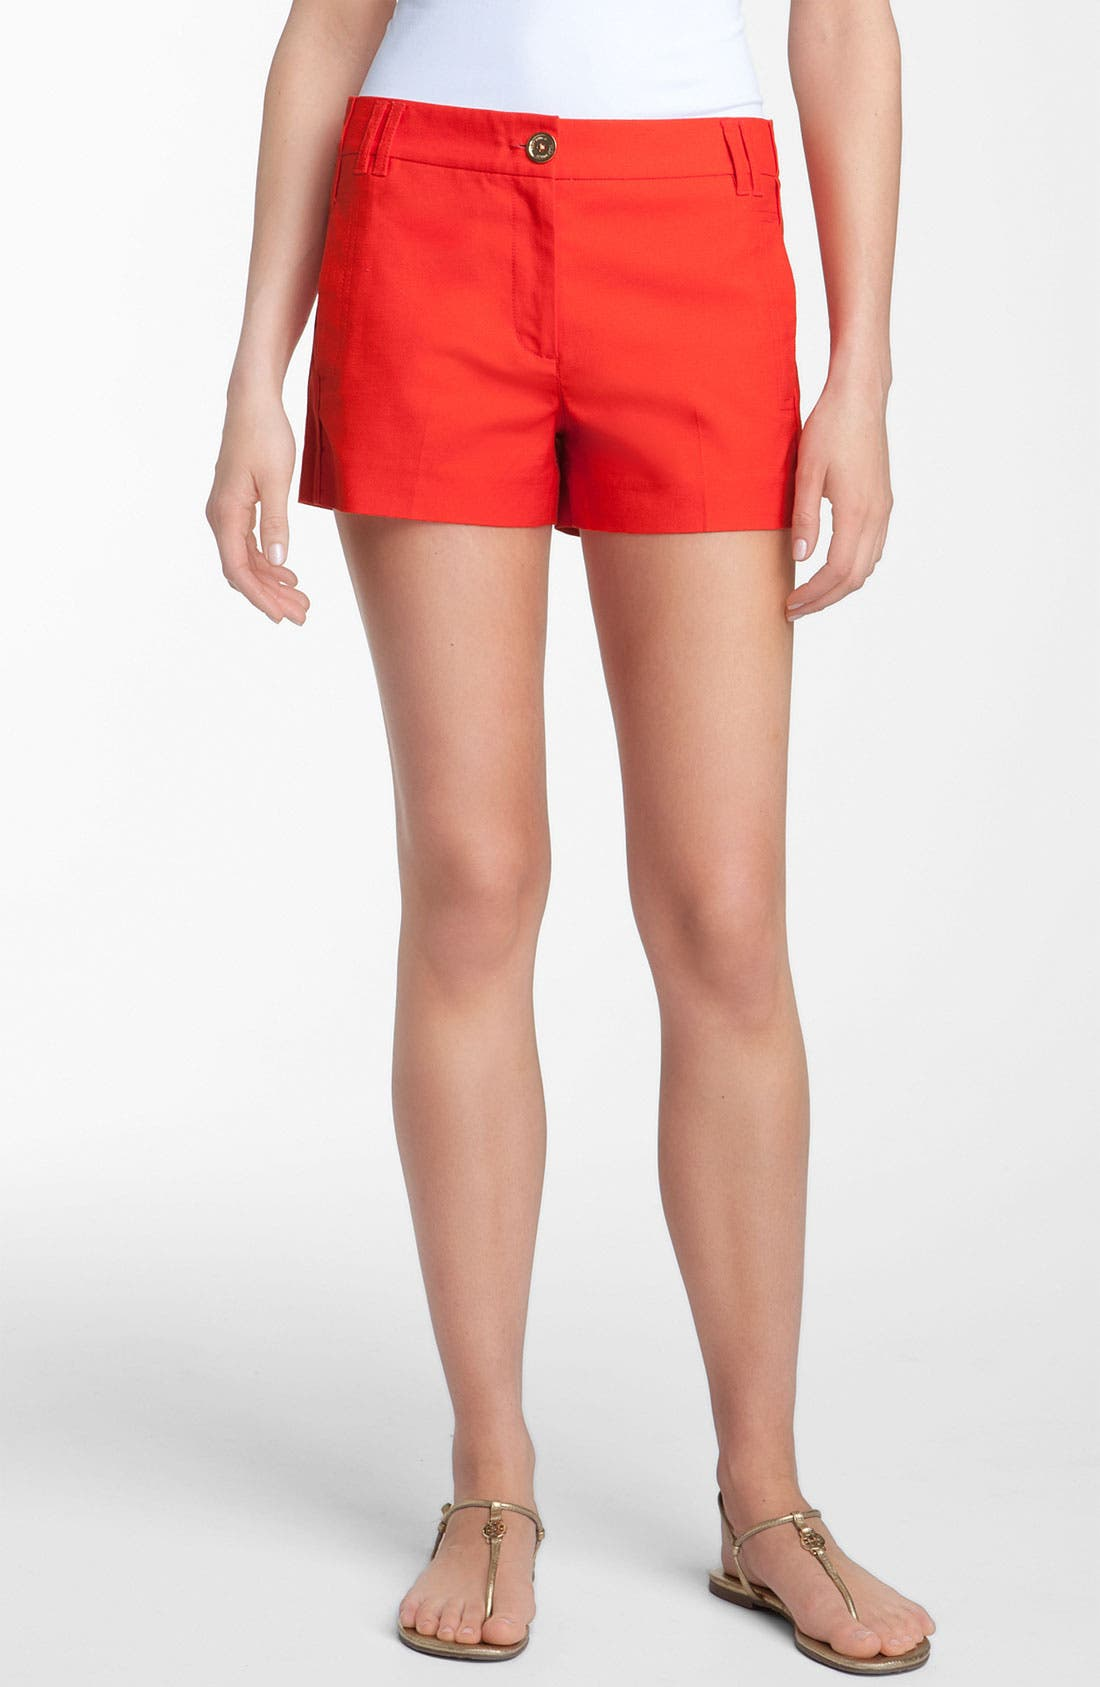 Alternate Image 1 Selected - Tory Burch 'Shearer' Shorts